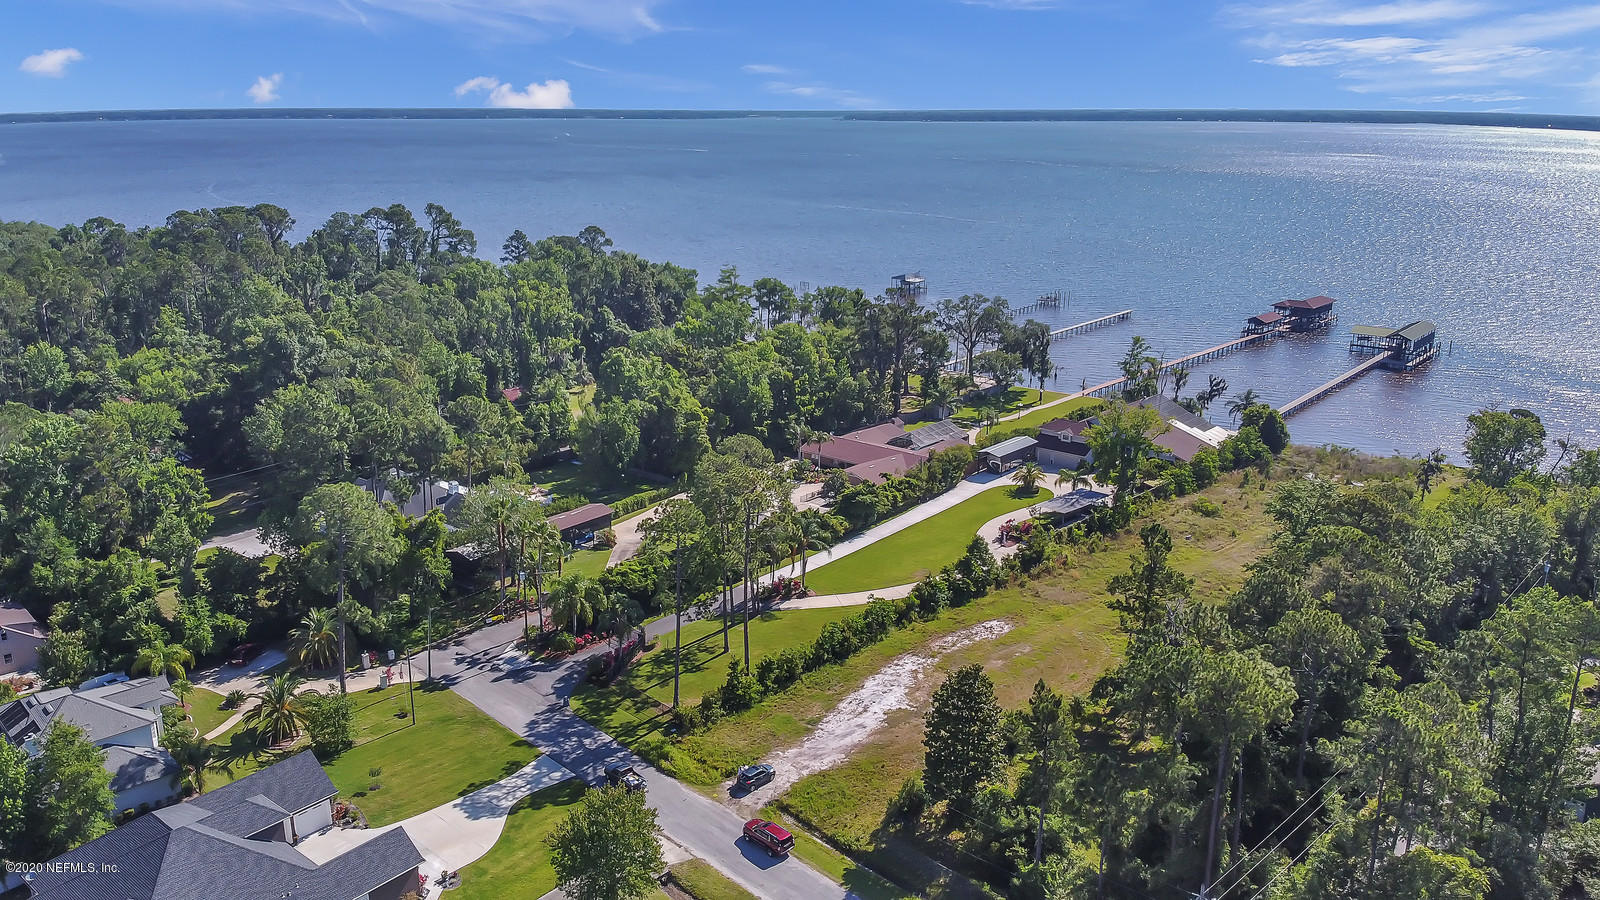 5947 WEST SHORES, FLEMING ISLAND, FLORIDA 32003, 3 Bedrooms Bedrooms, ,3 BathroomsBathrooms,Residential,For sale,WEST SHORES,1053267